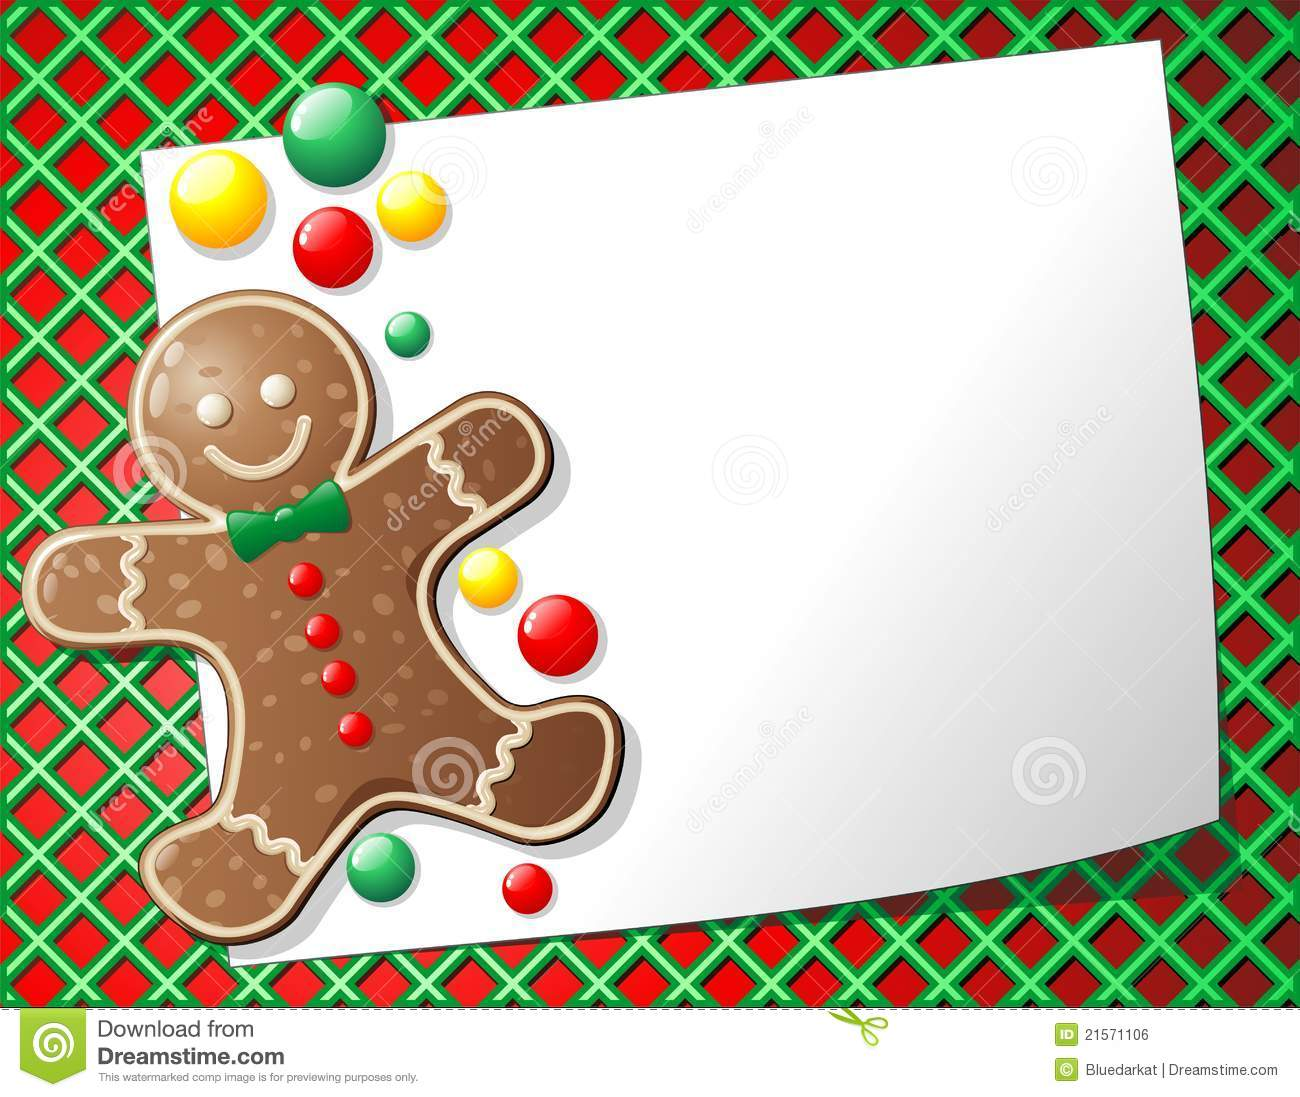 Gingerbread clipart background #7